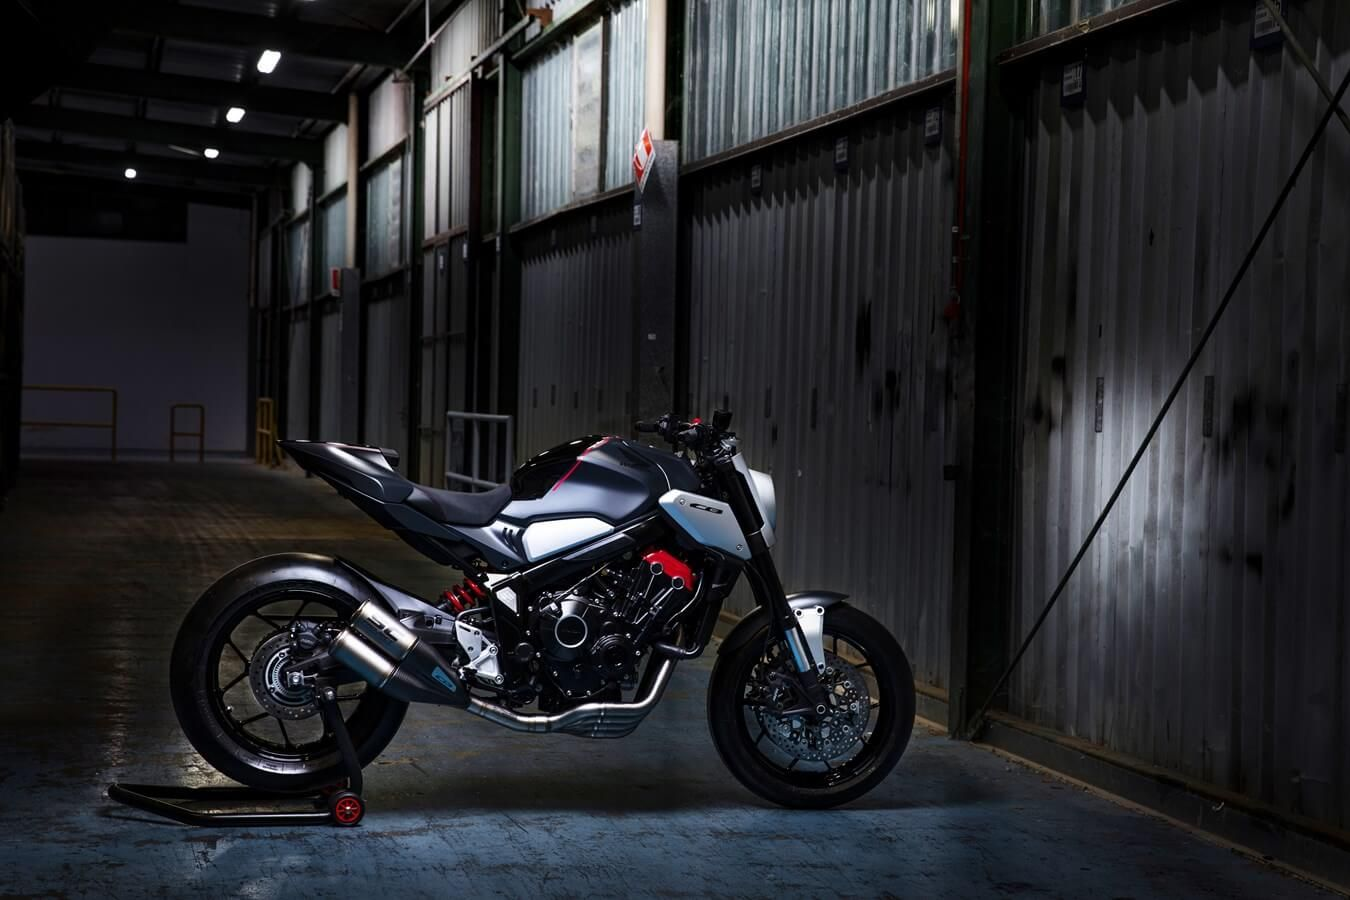 2019 Honda Cb650r Neo Sports Cafe Concept Motorcycle New Naked Cbr